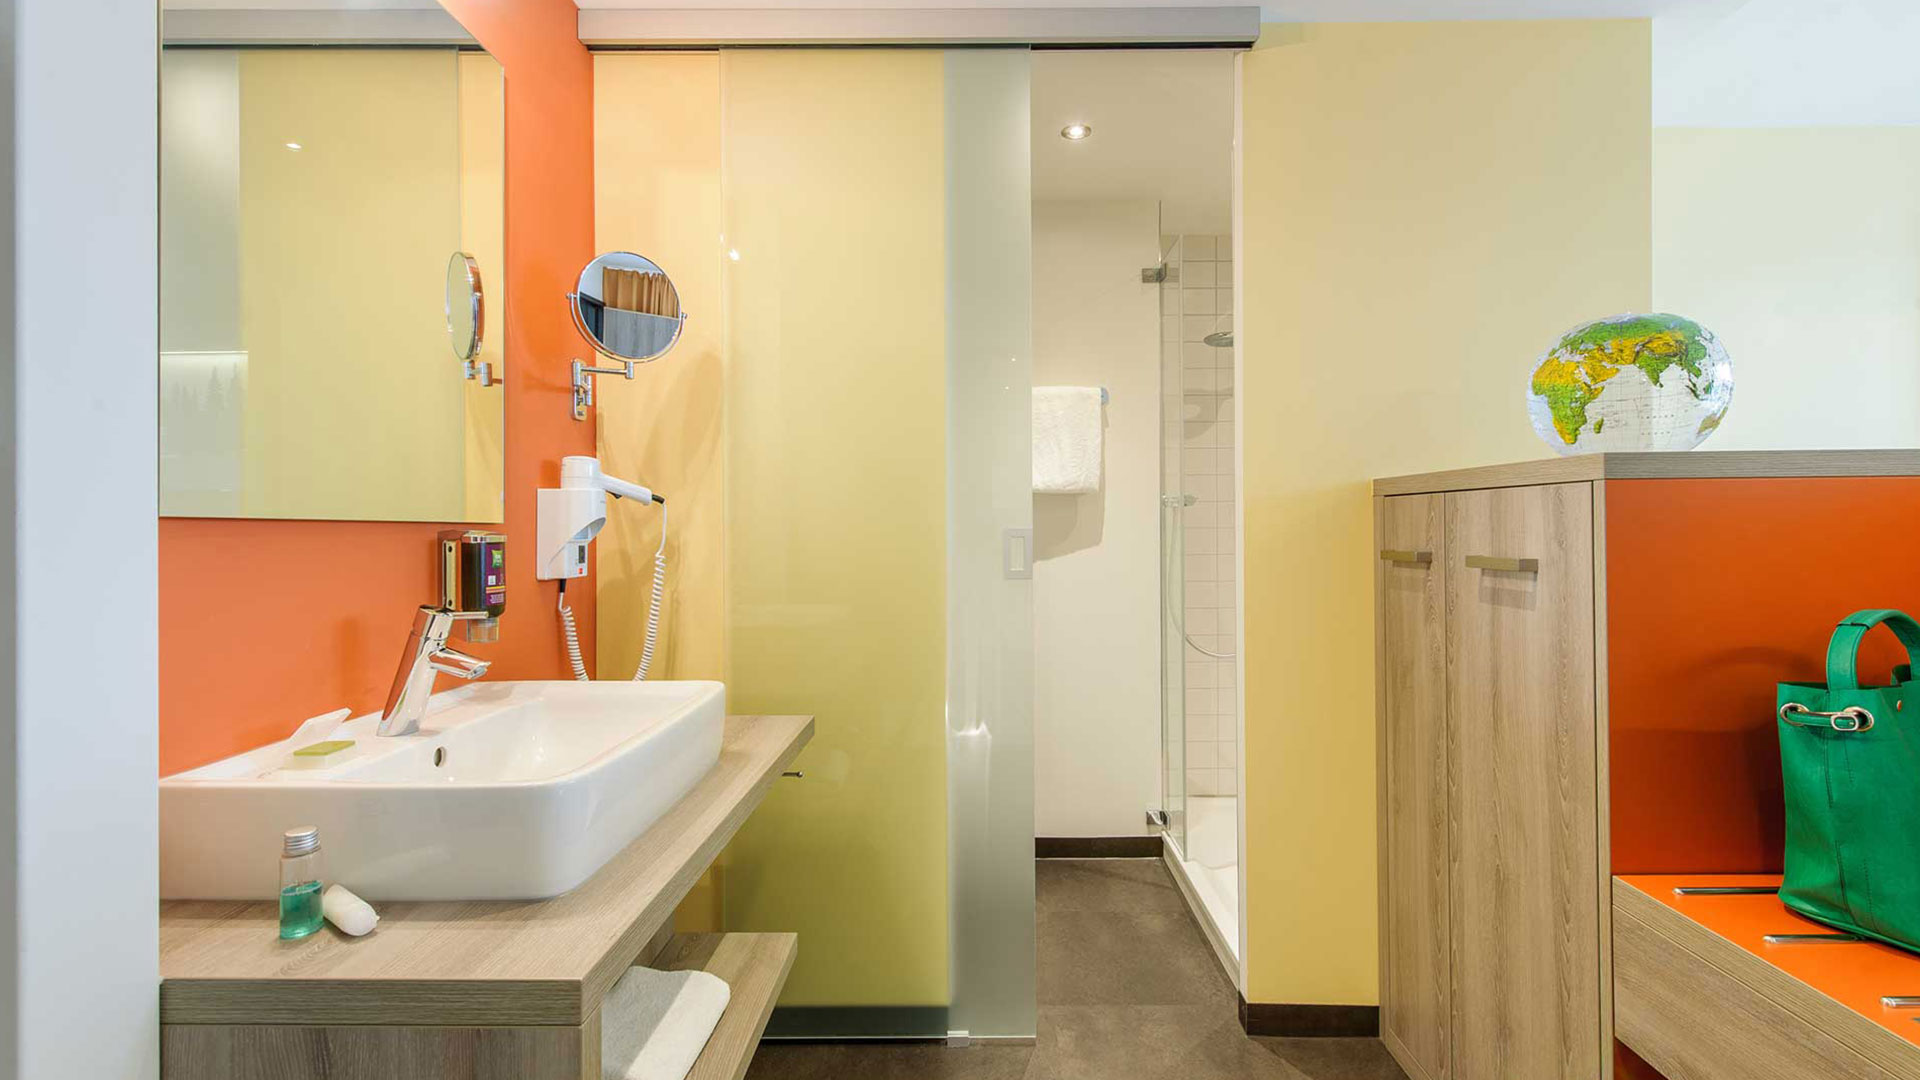 Photo of a bathroom - 02 - ibis Styles Nagold-Schwarzwald